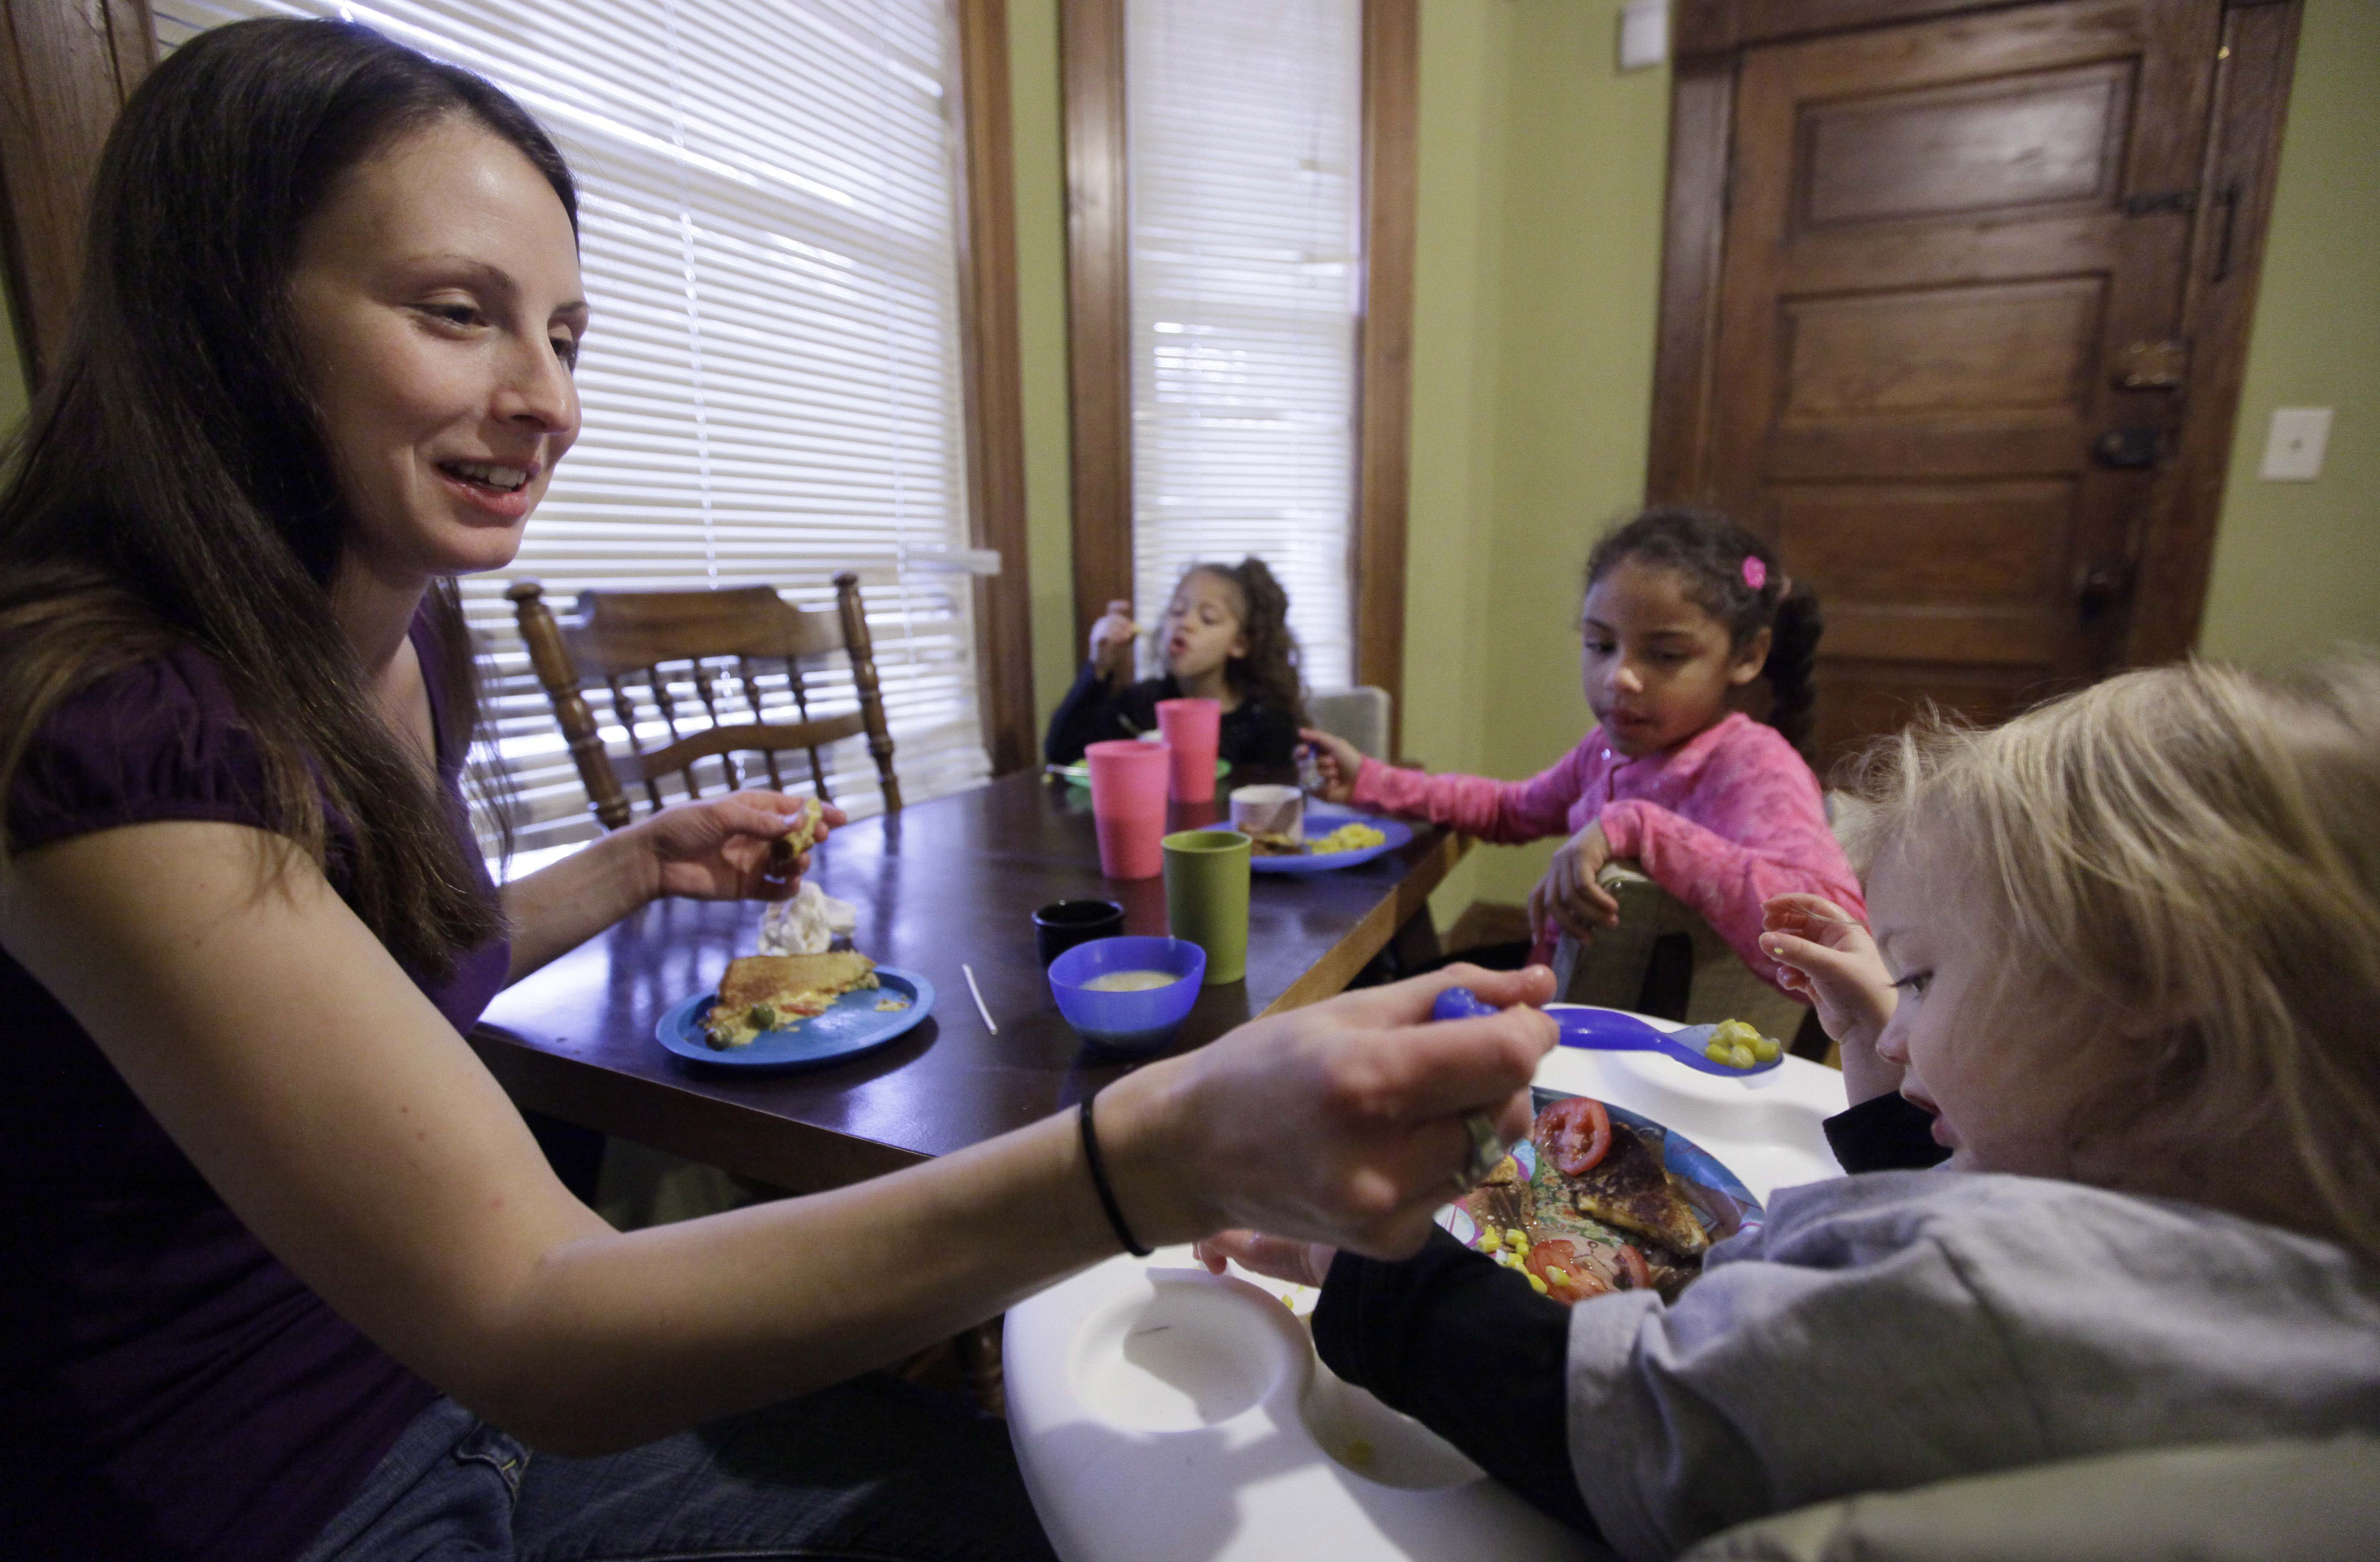 A woman sits at a dinner table with her three children.